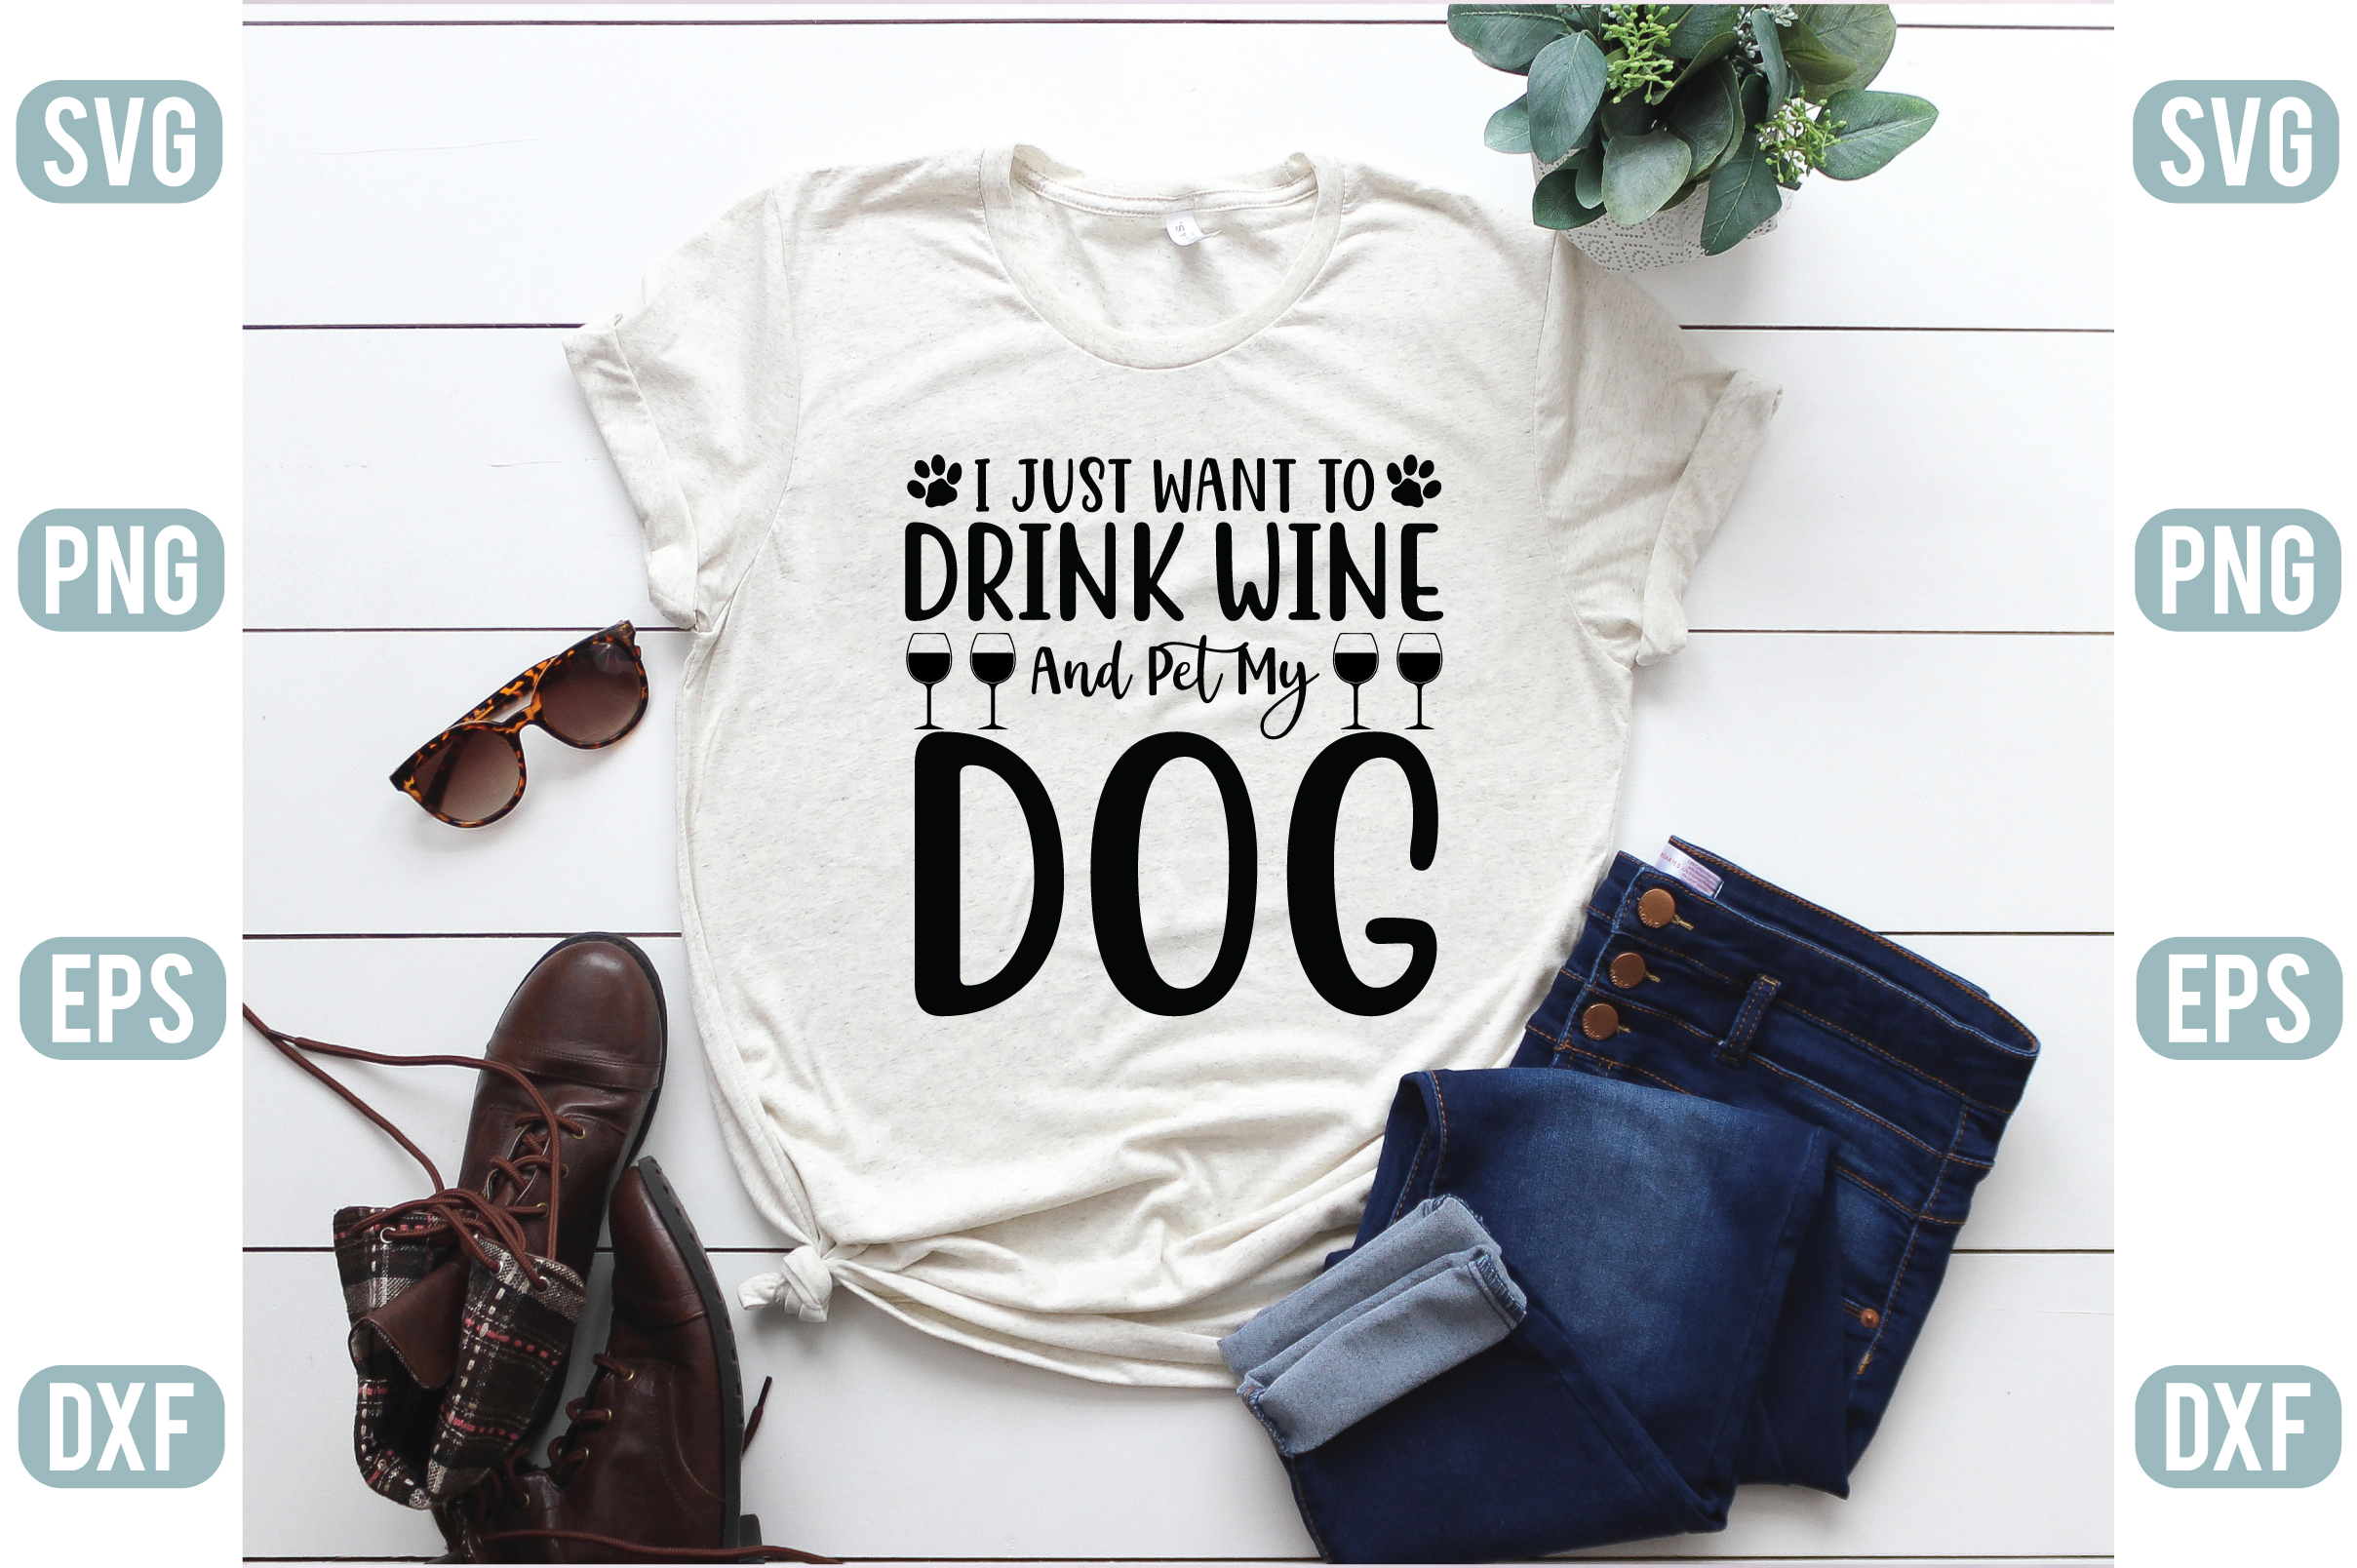 I Just Want To Drink Wine And Pet My Dog Graphic By Craft Store Creative Fabrica